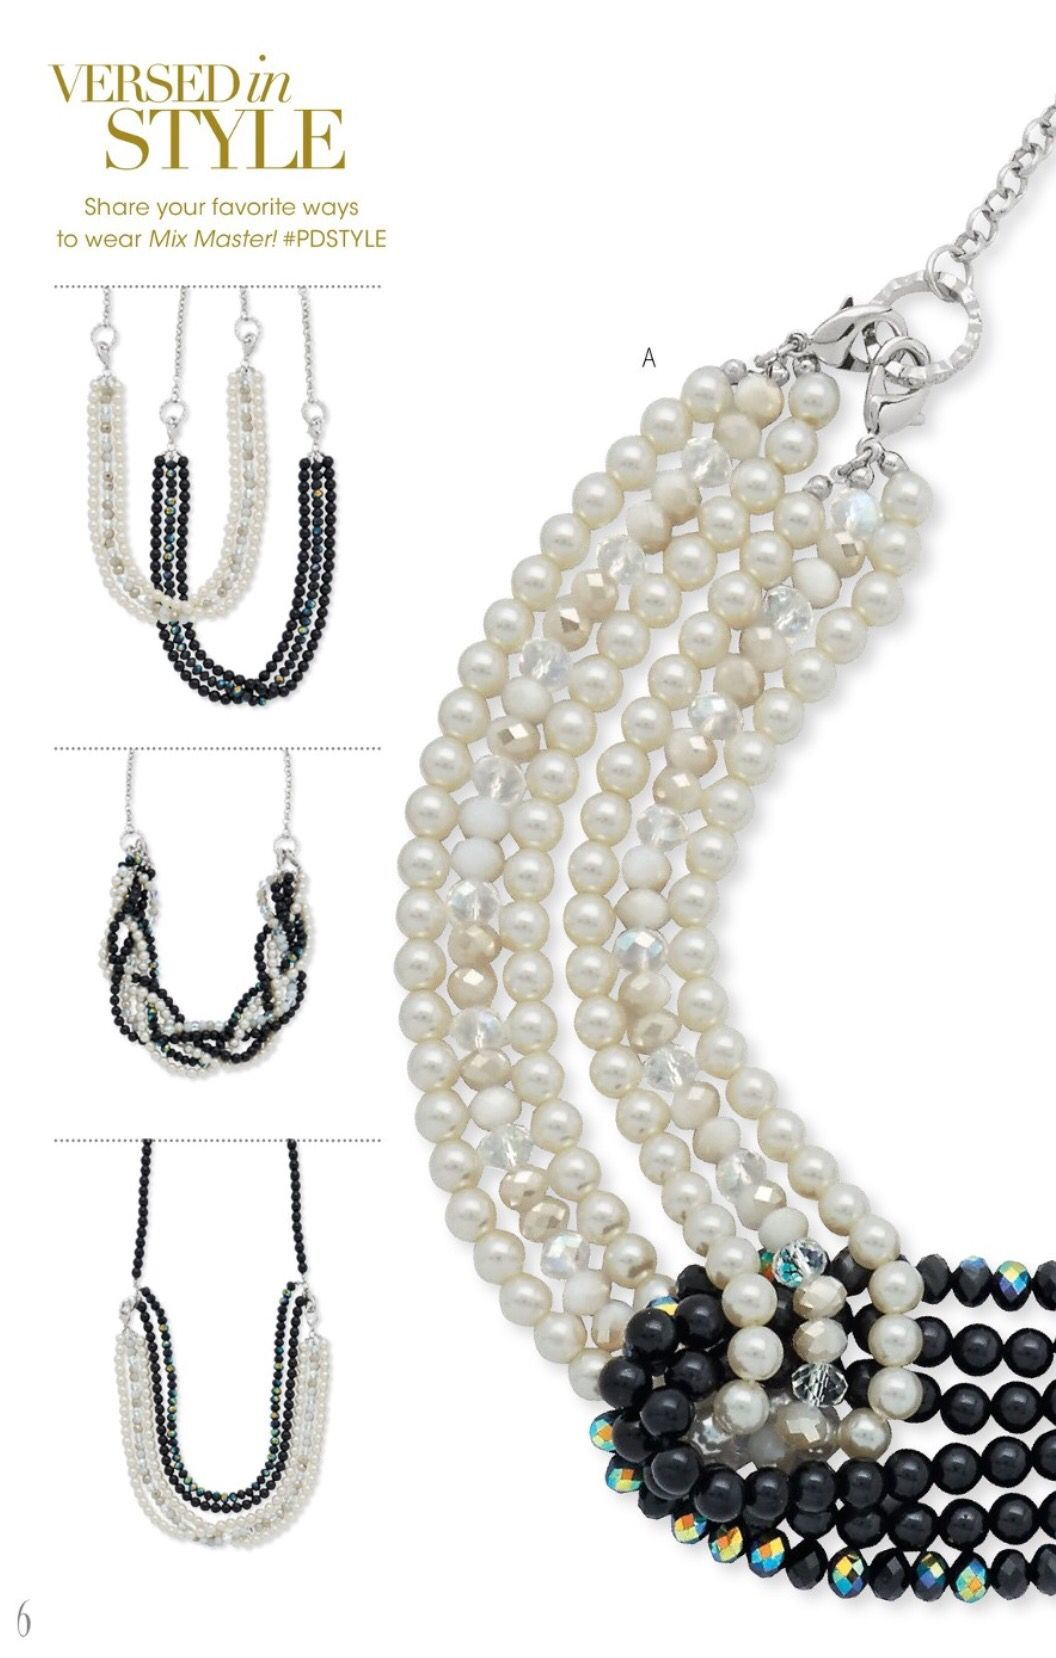 Premier designs jewelry 2015 - Mix Master Imitation Pearl Necklace From The 2015 Line